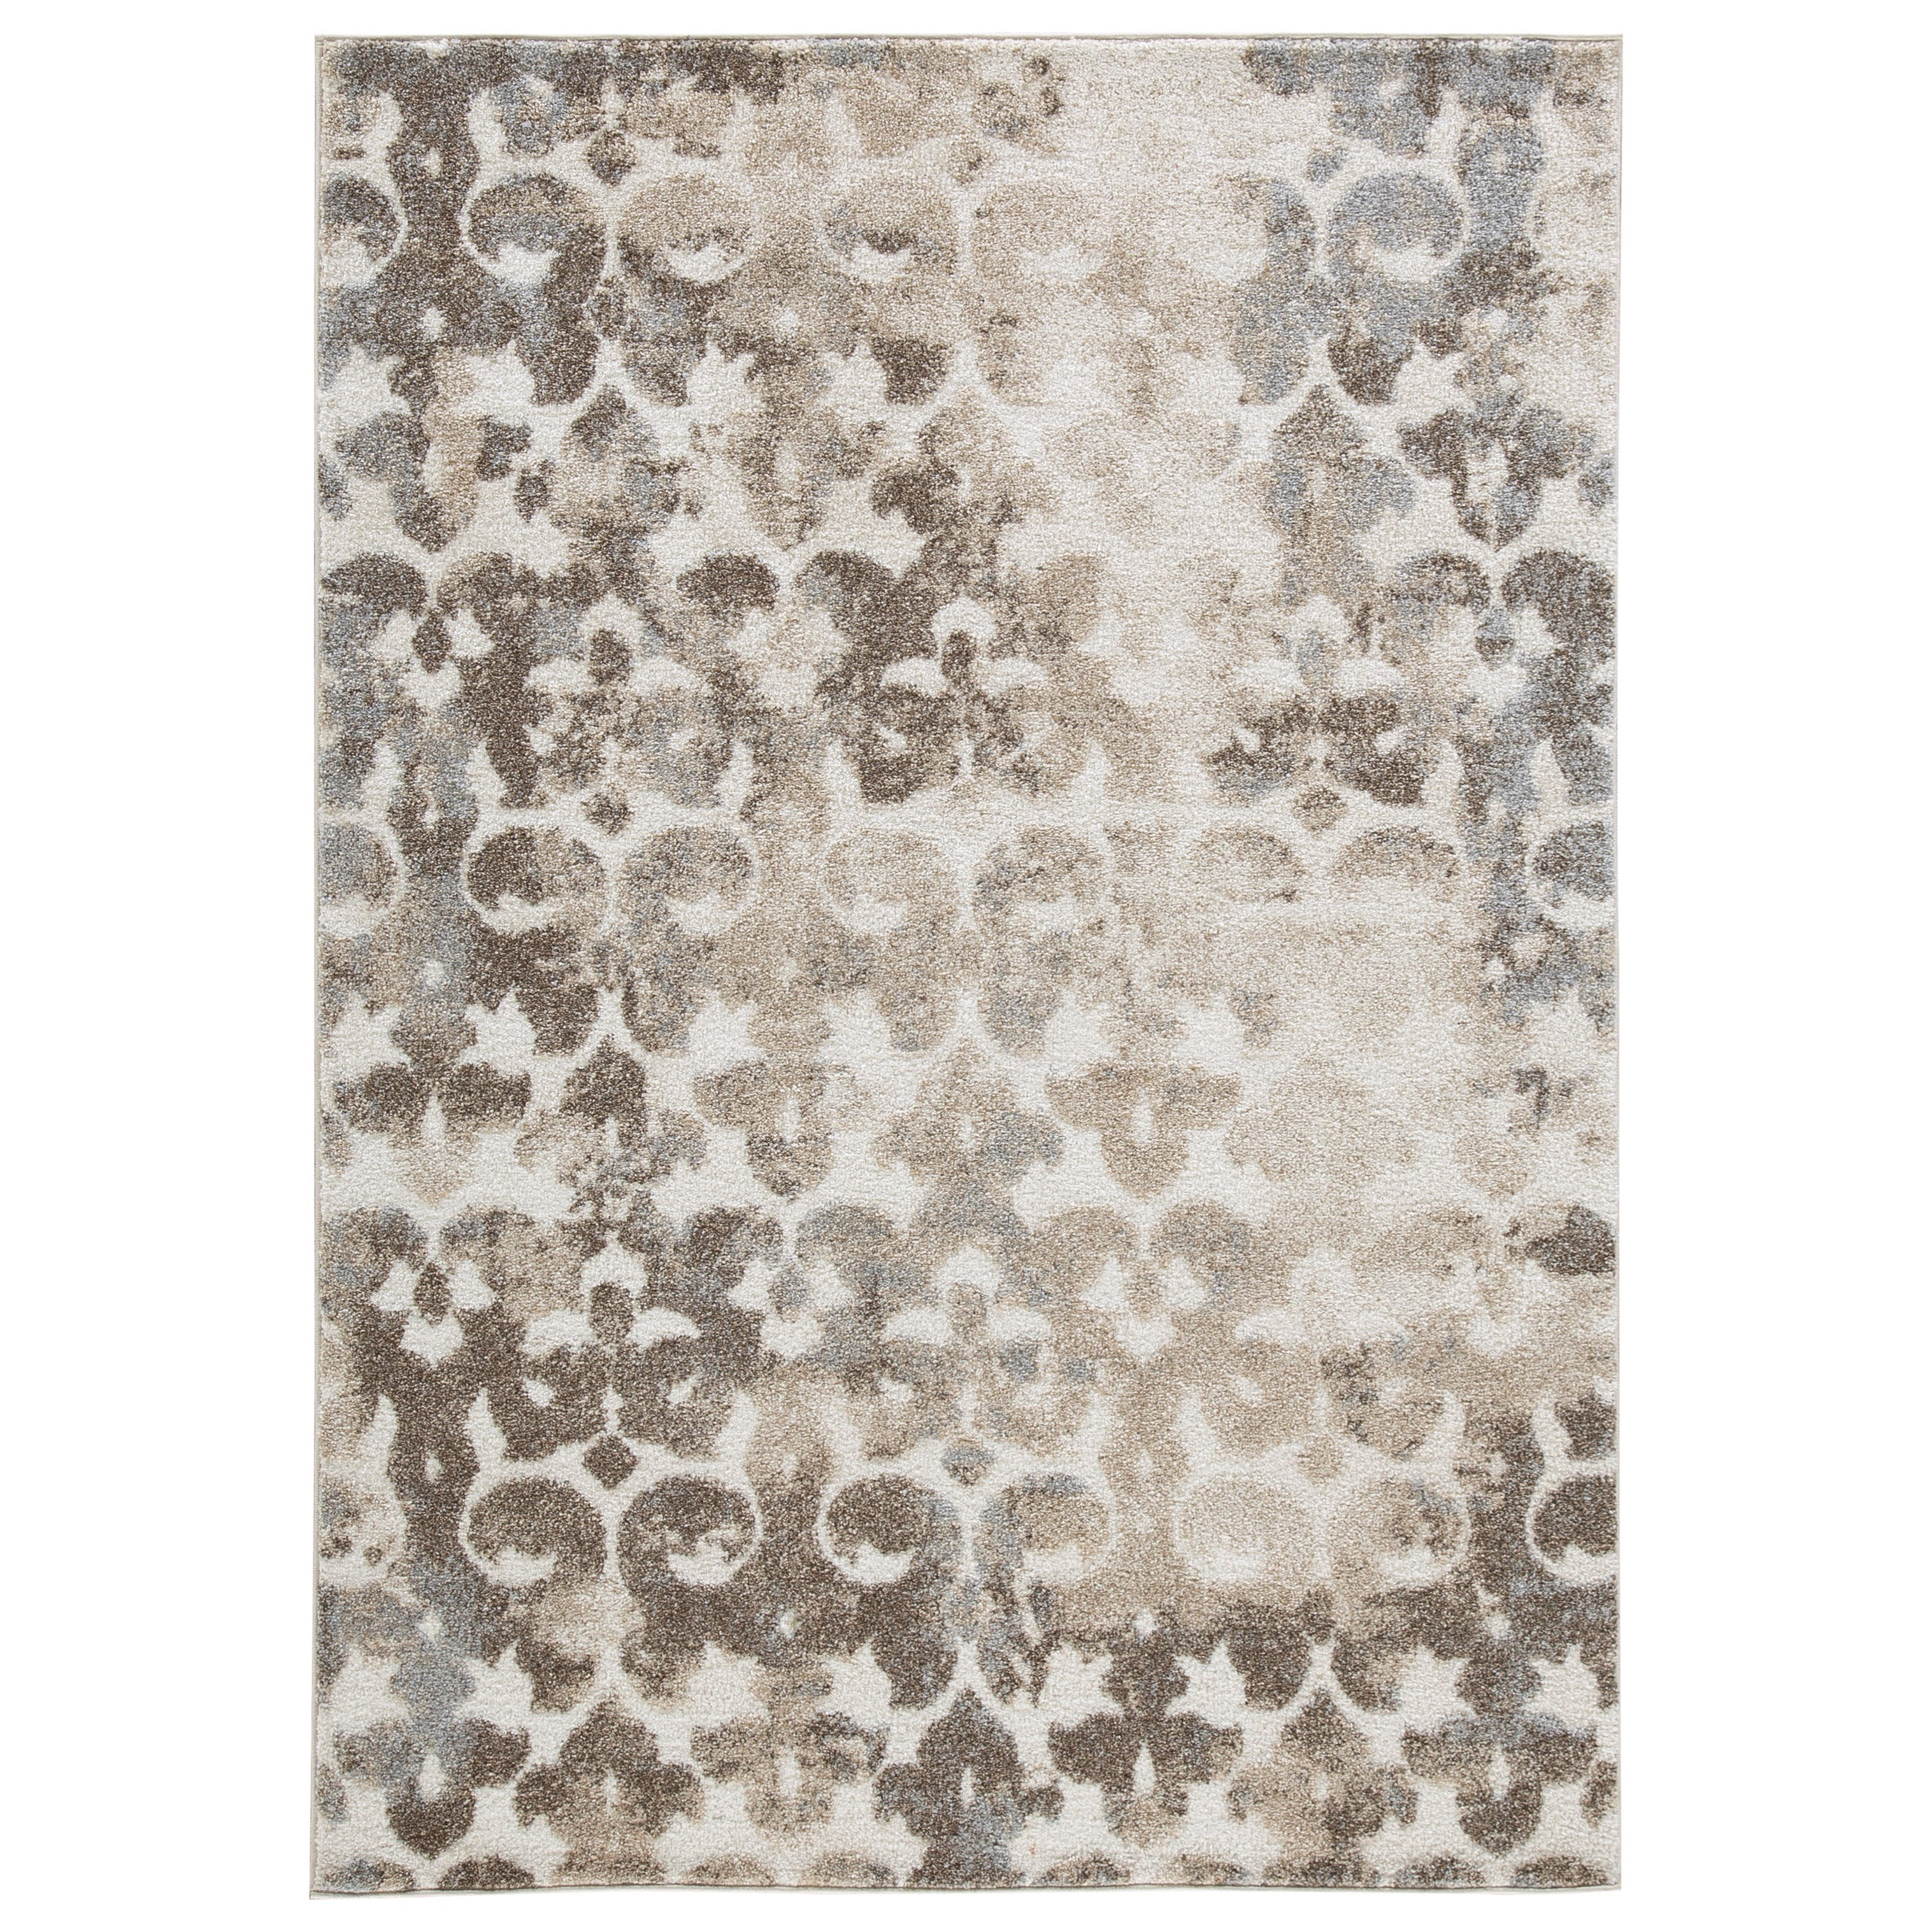 Casual Area Rugs Jiro Brown Cream Large Rug